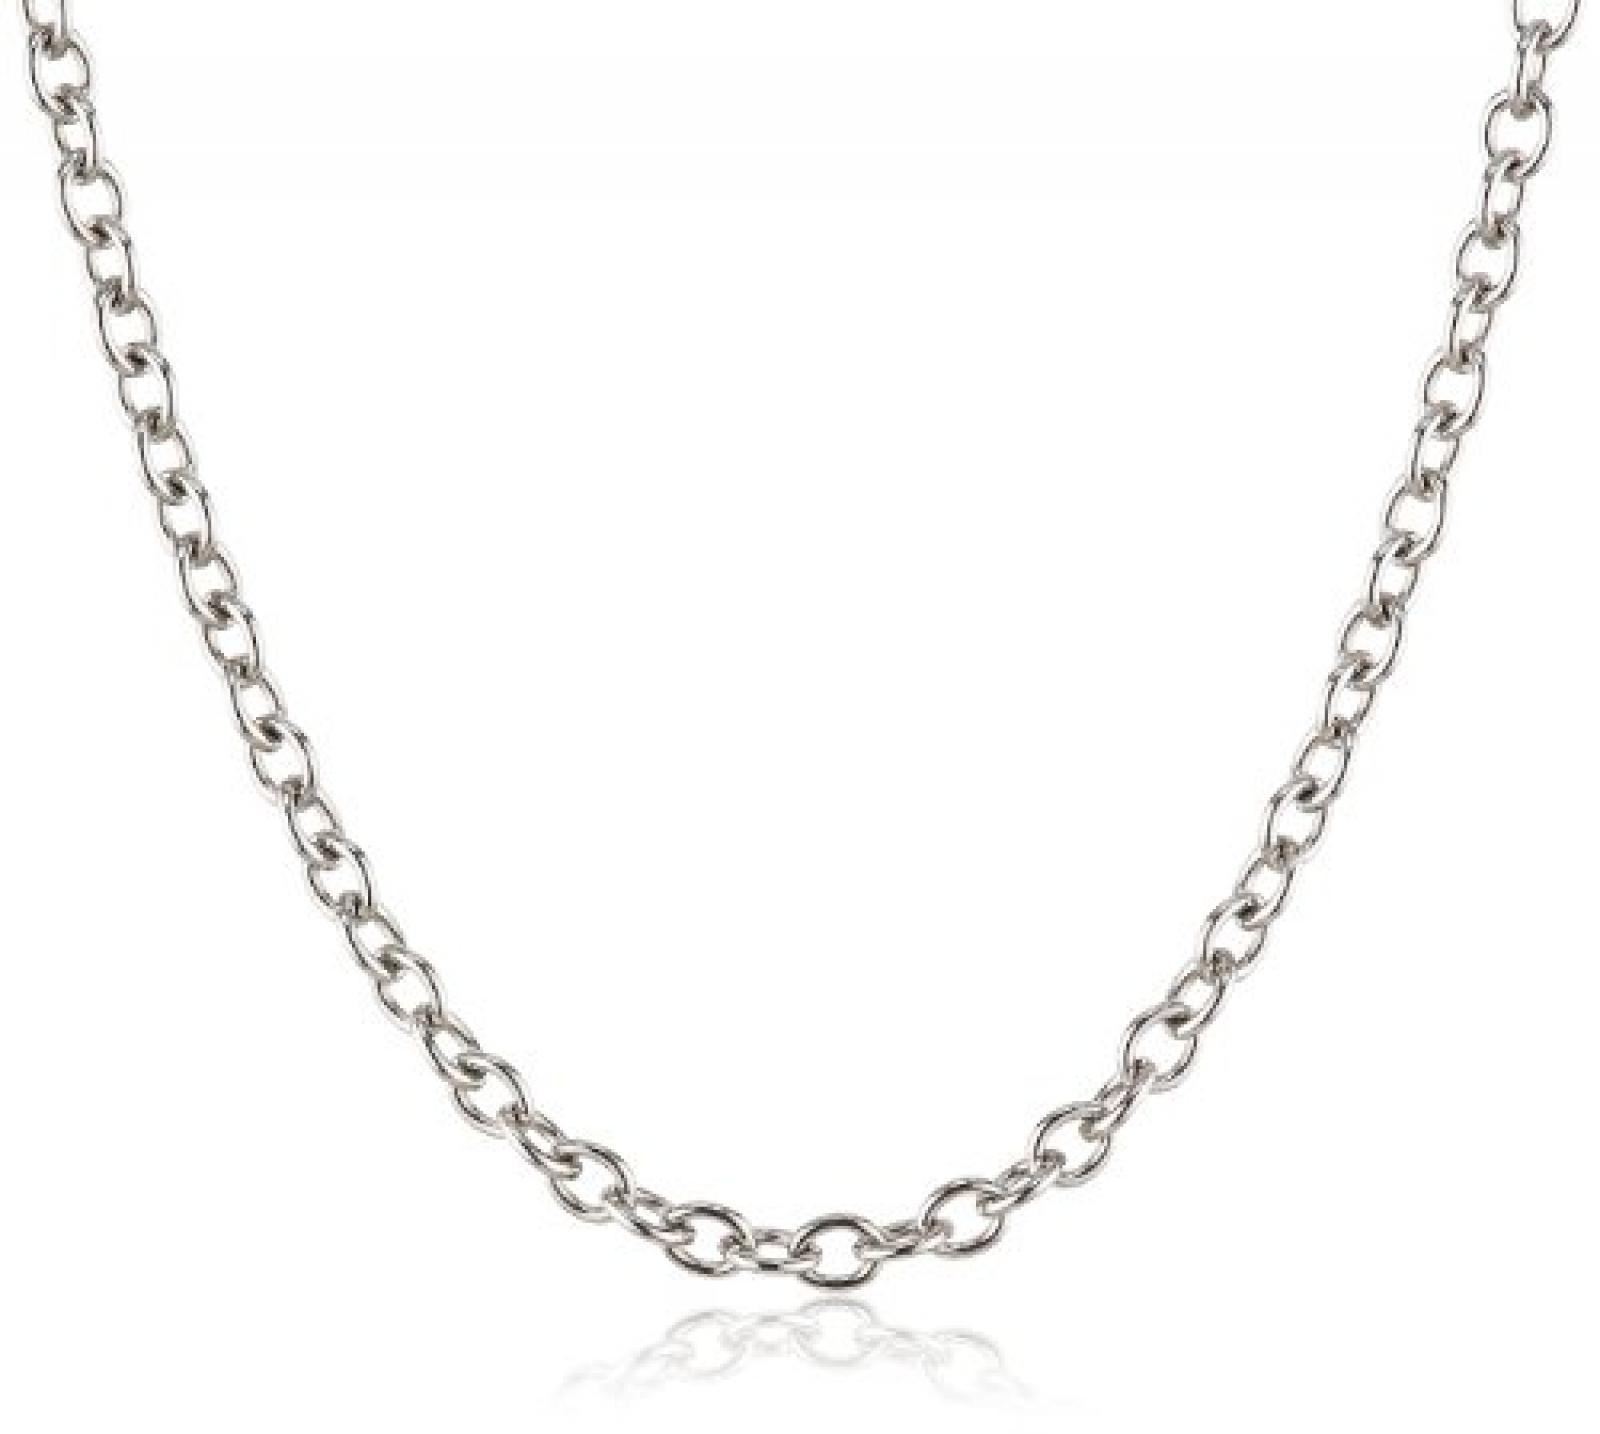 Amor Jewelry Unisex-Halskette 925 Sterling Silber 308861